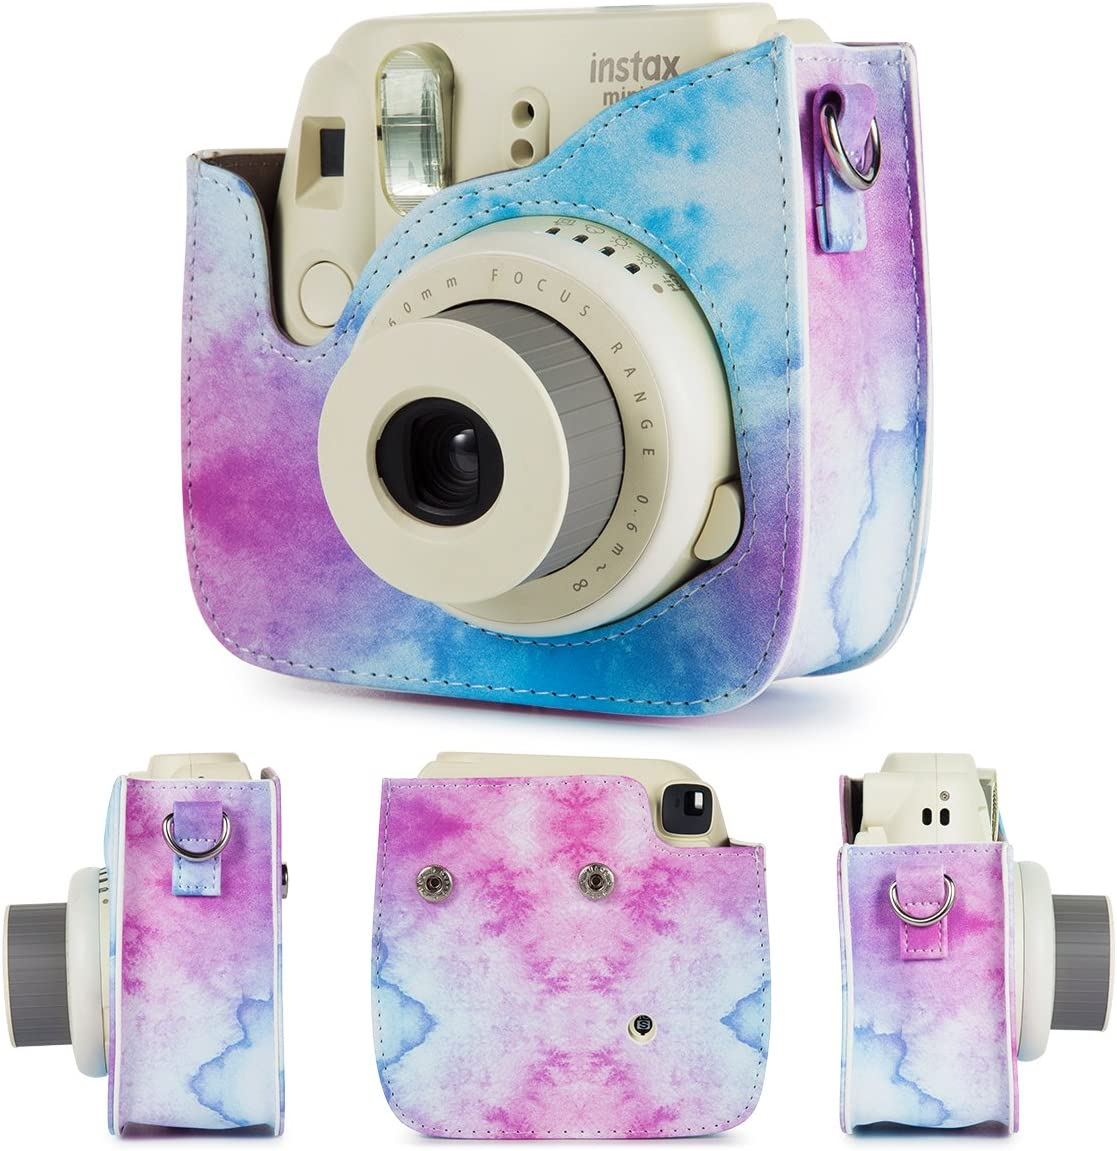 Case,Albums,Frames,Film Stickers,Colored Filters,Selfie Lens Flylther Compatible Mini 8 9 Camera 8-in-1 Accessories Bundles Set for Fujifilm Instax Mini 8 9 Instant Film Camera Blue Pink Watercolour